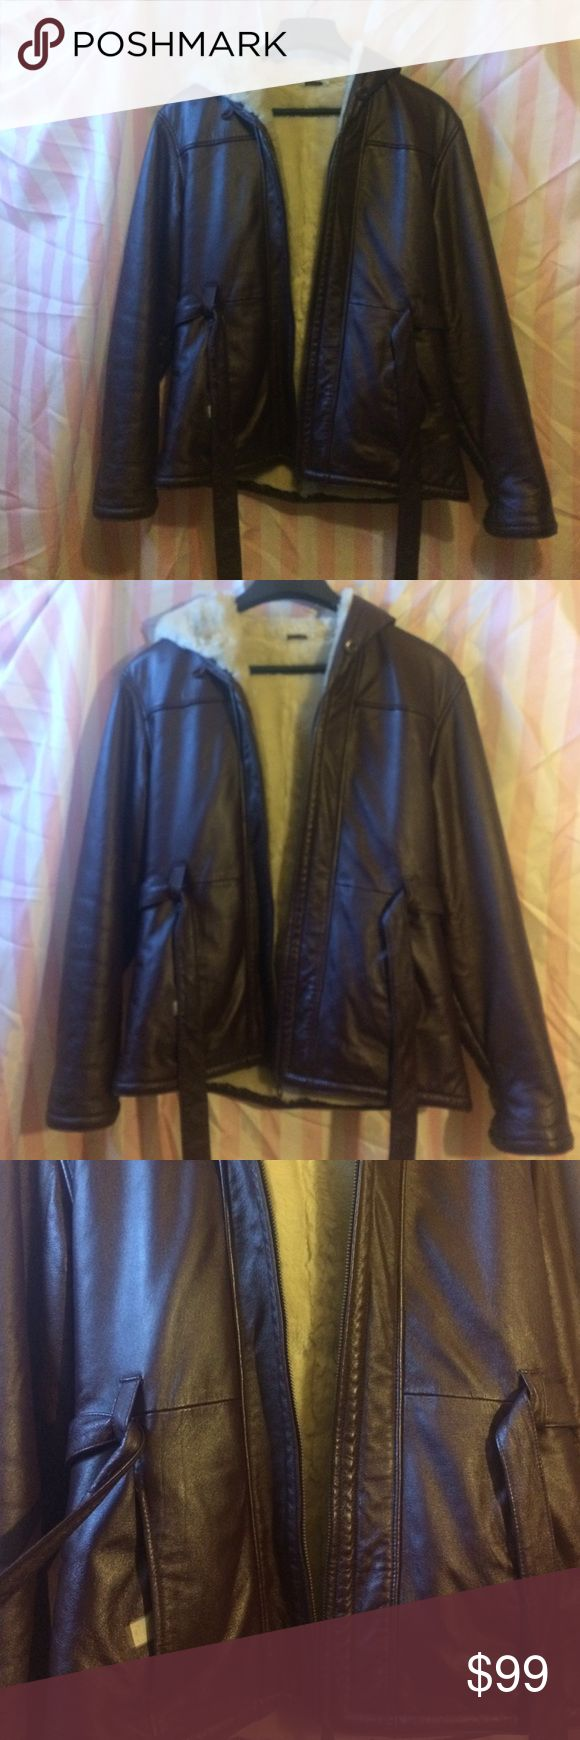 Women's leather coat Brown leather with soft fur inside fits women's m and l Jackets & Coats